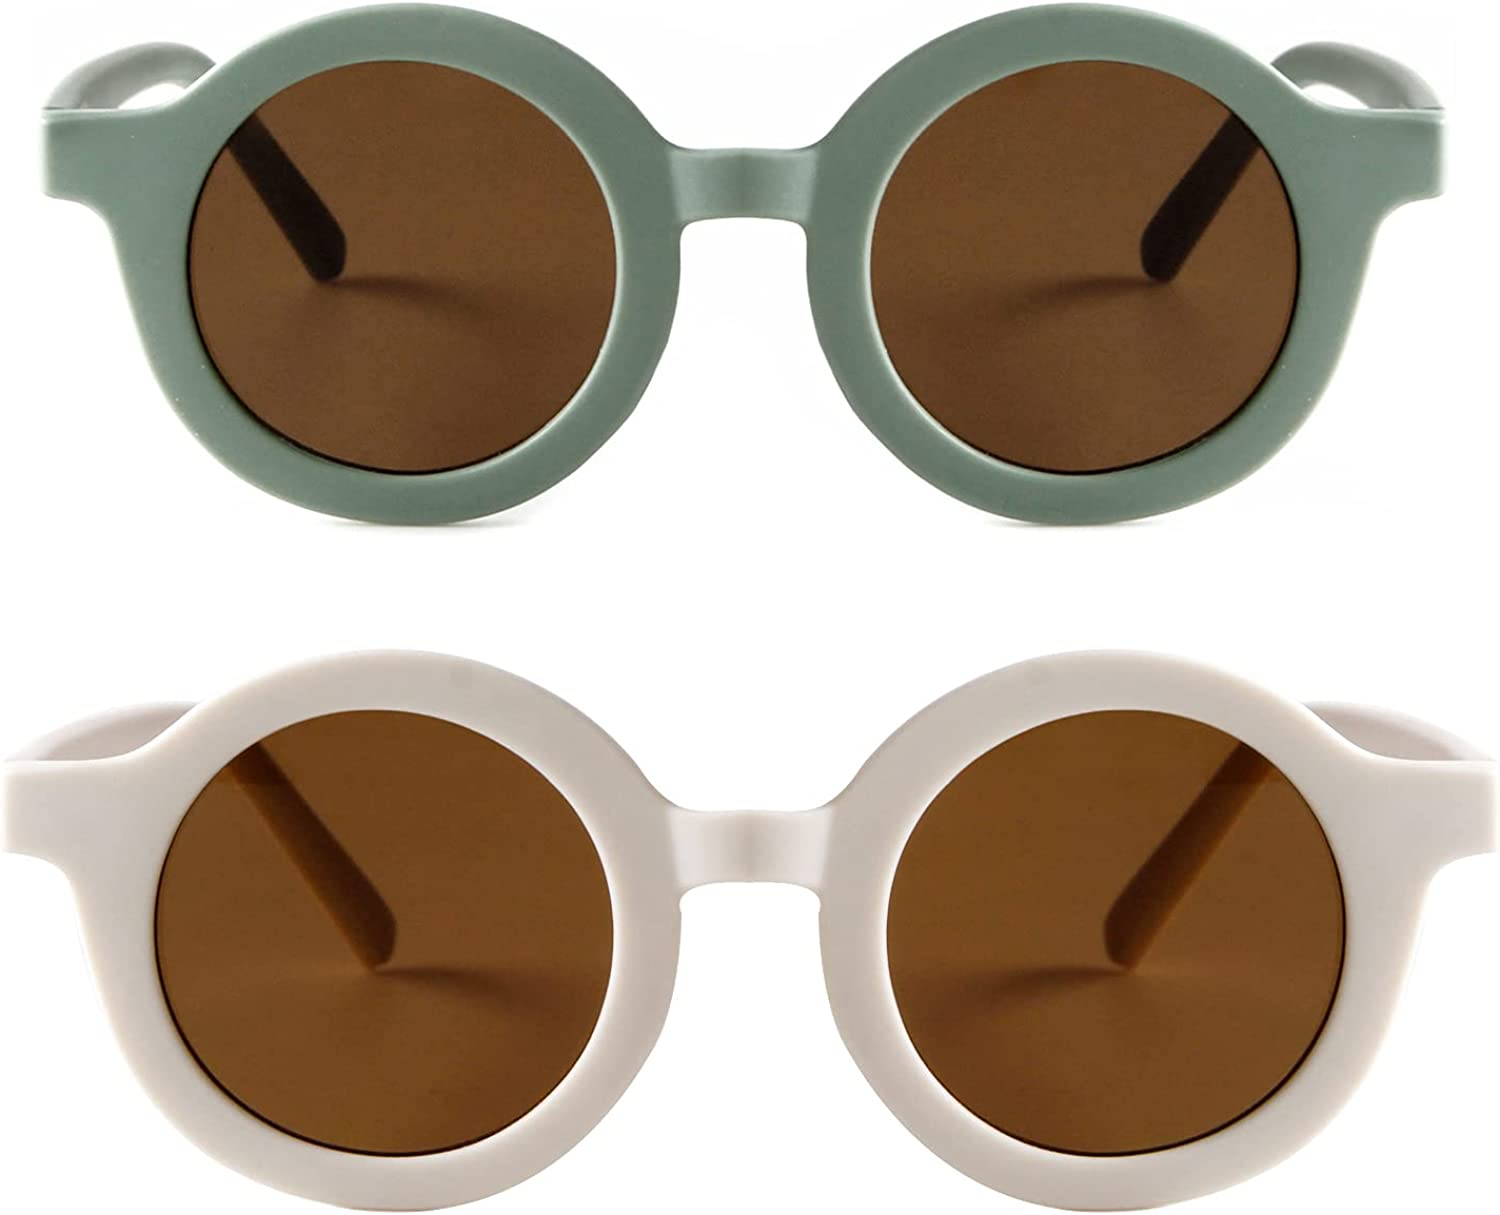 Kids Very popular Sunglasses Cute Round Glasses Shades Girls Max 69% OFF for Little Boys